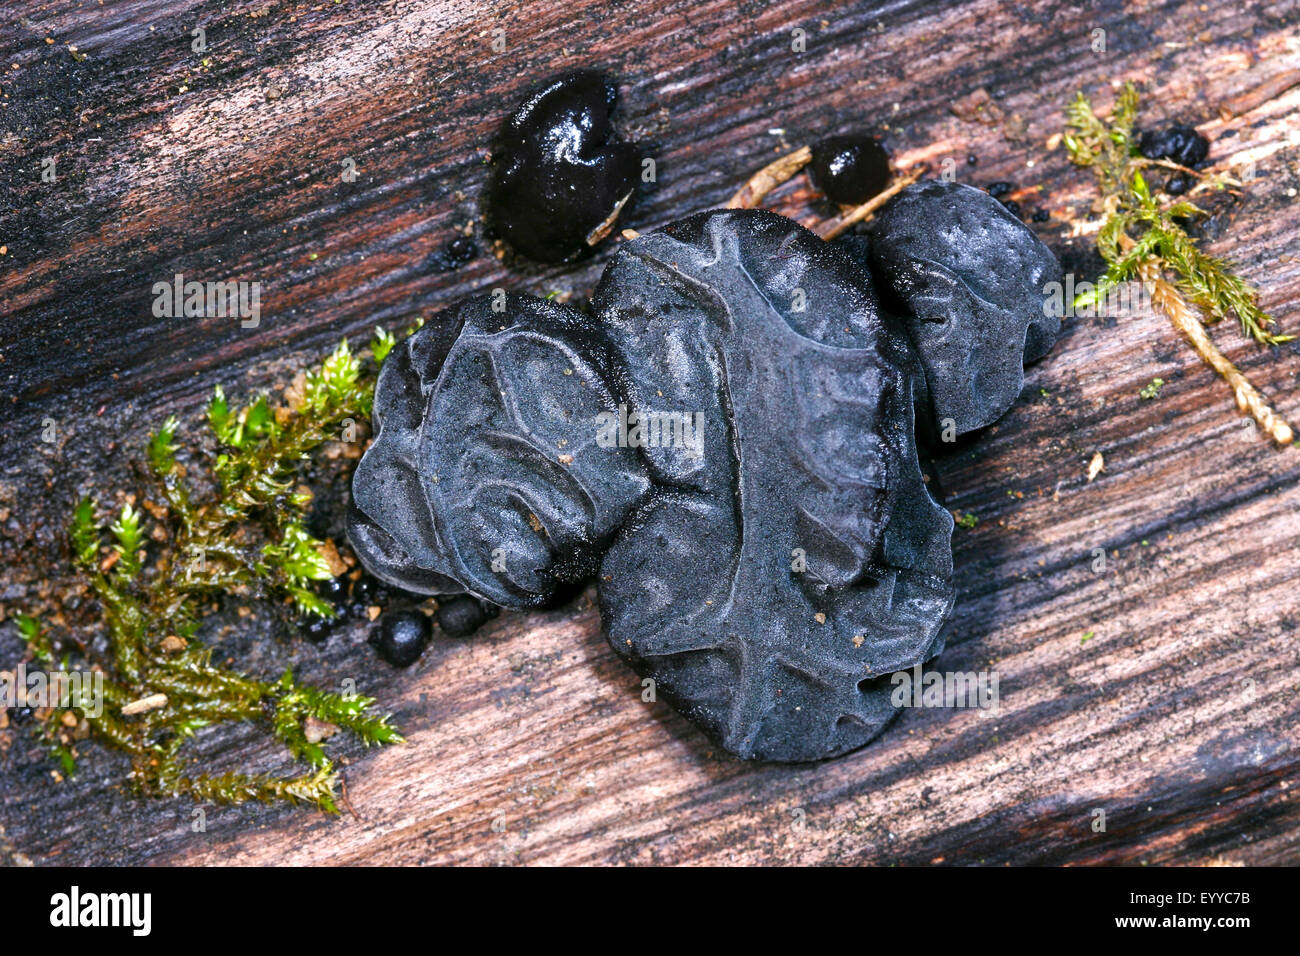 Witches' butter, Black witches' butter, Black jelly roll, Warty jelly fungus (Exidia glandulosa, Exidia - Stock Image